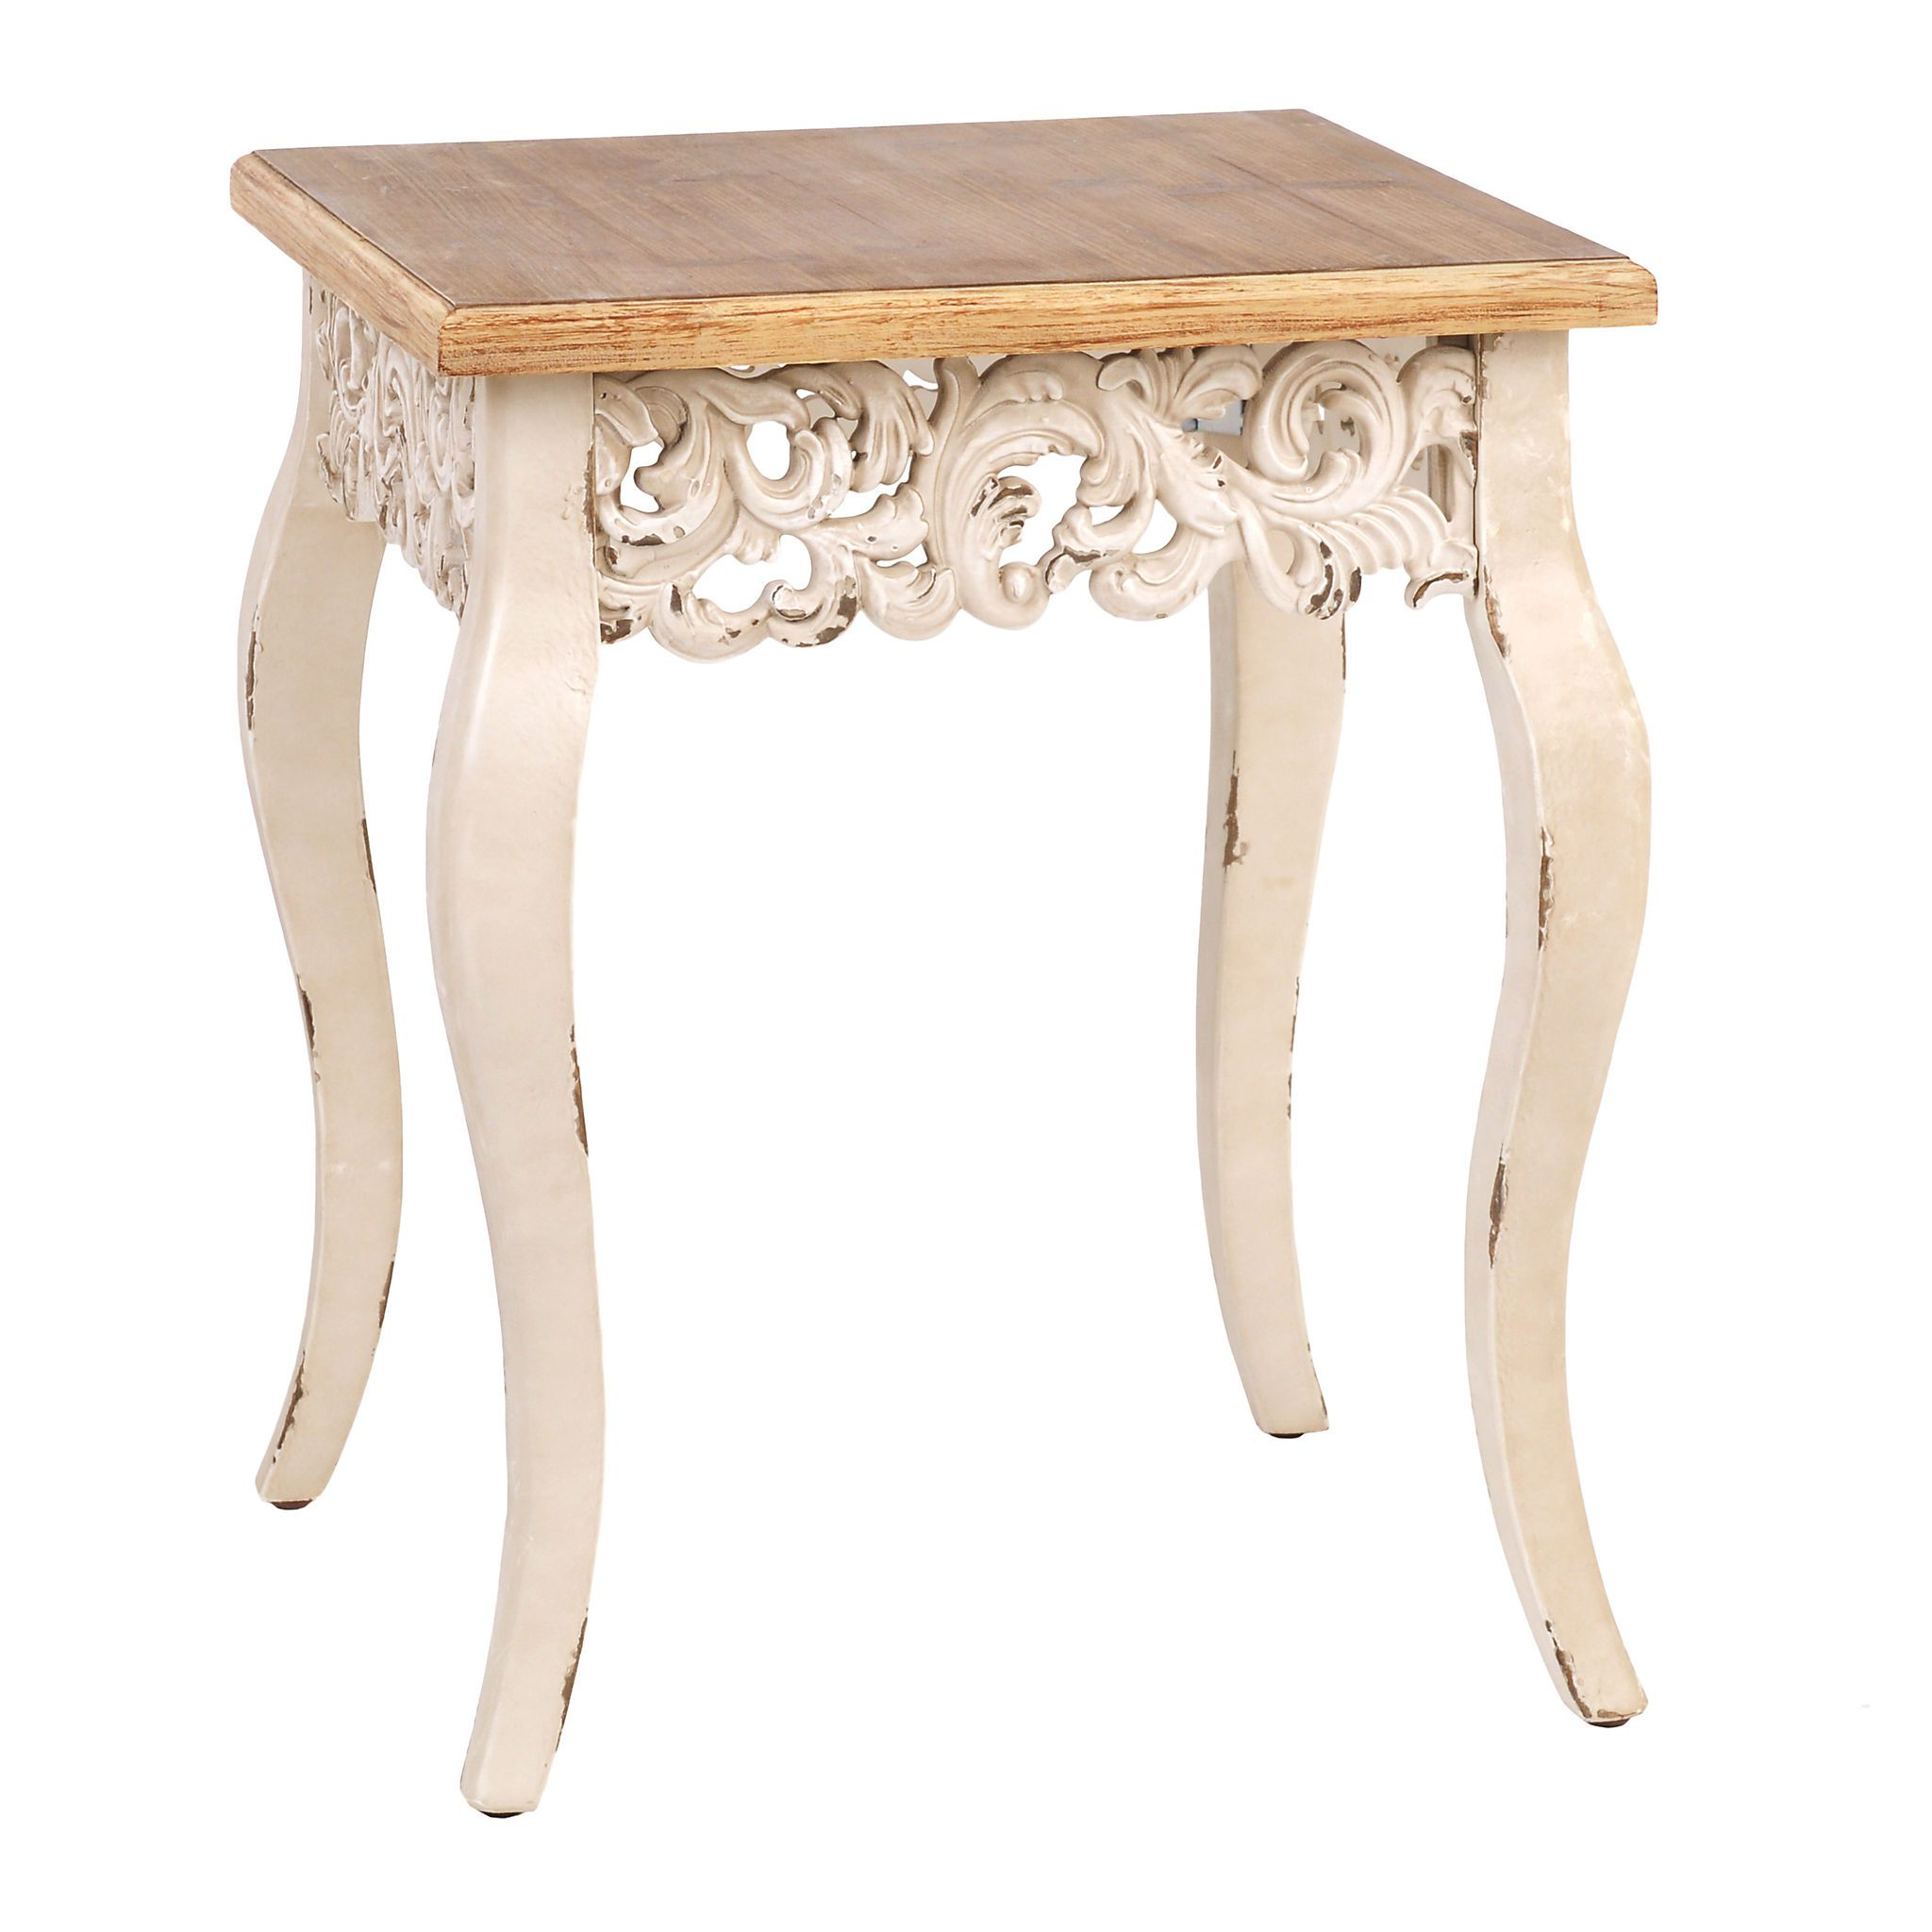 ivory baroque accent table home sweet antique white kirklands rustic tablecloth black and cream rug bar height patio lucite glass coffee end unfinished console round outdoor top